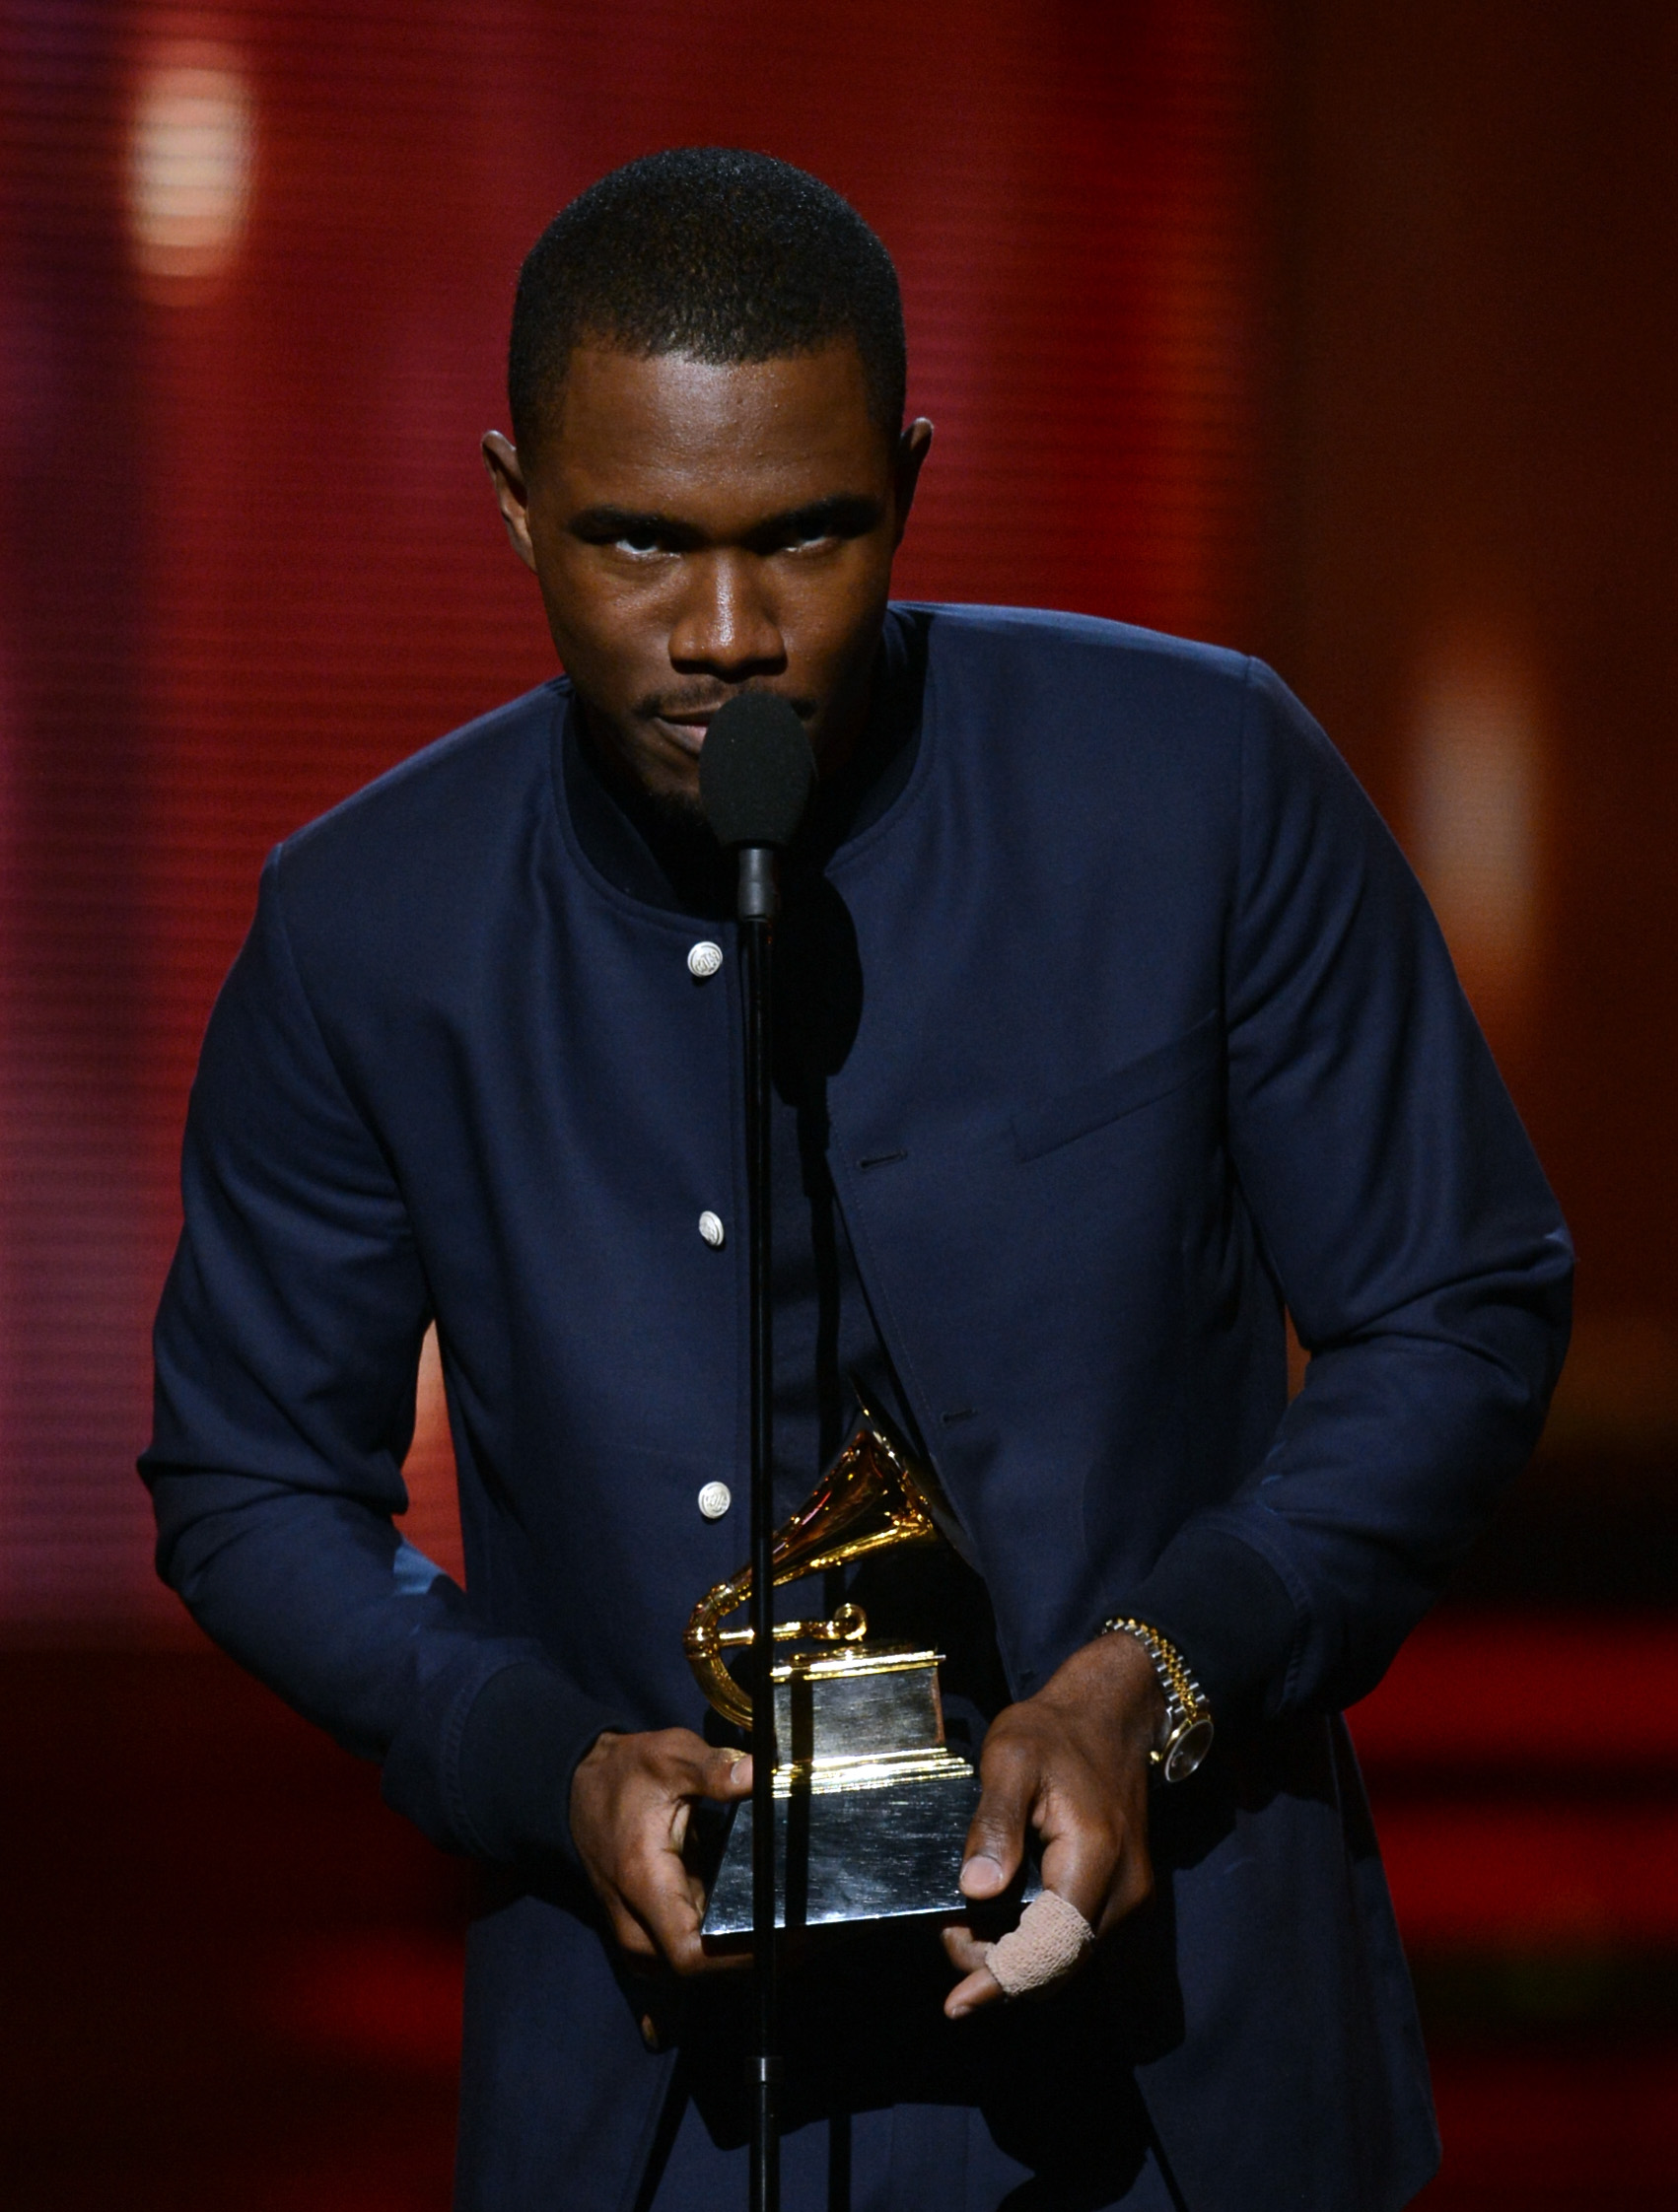 Frank Ocean accepted his Grammy on stage.